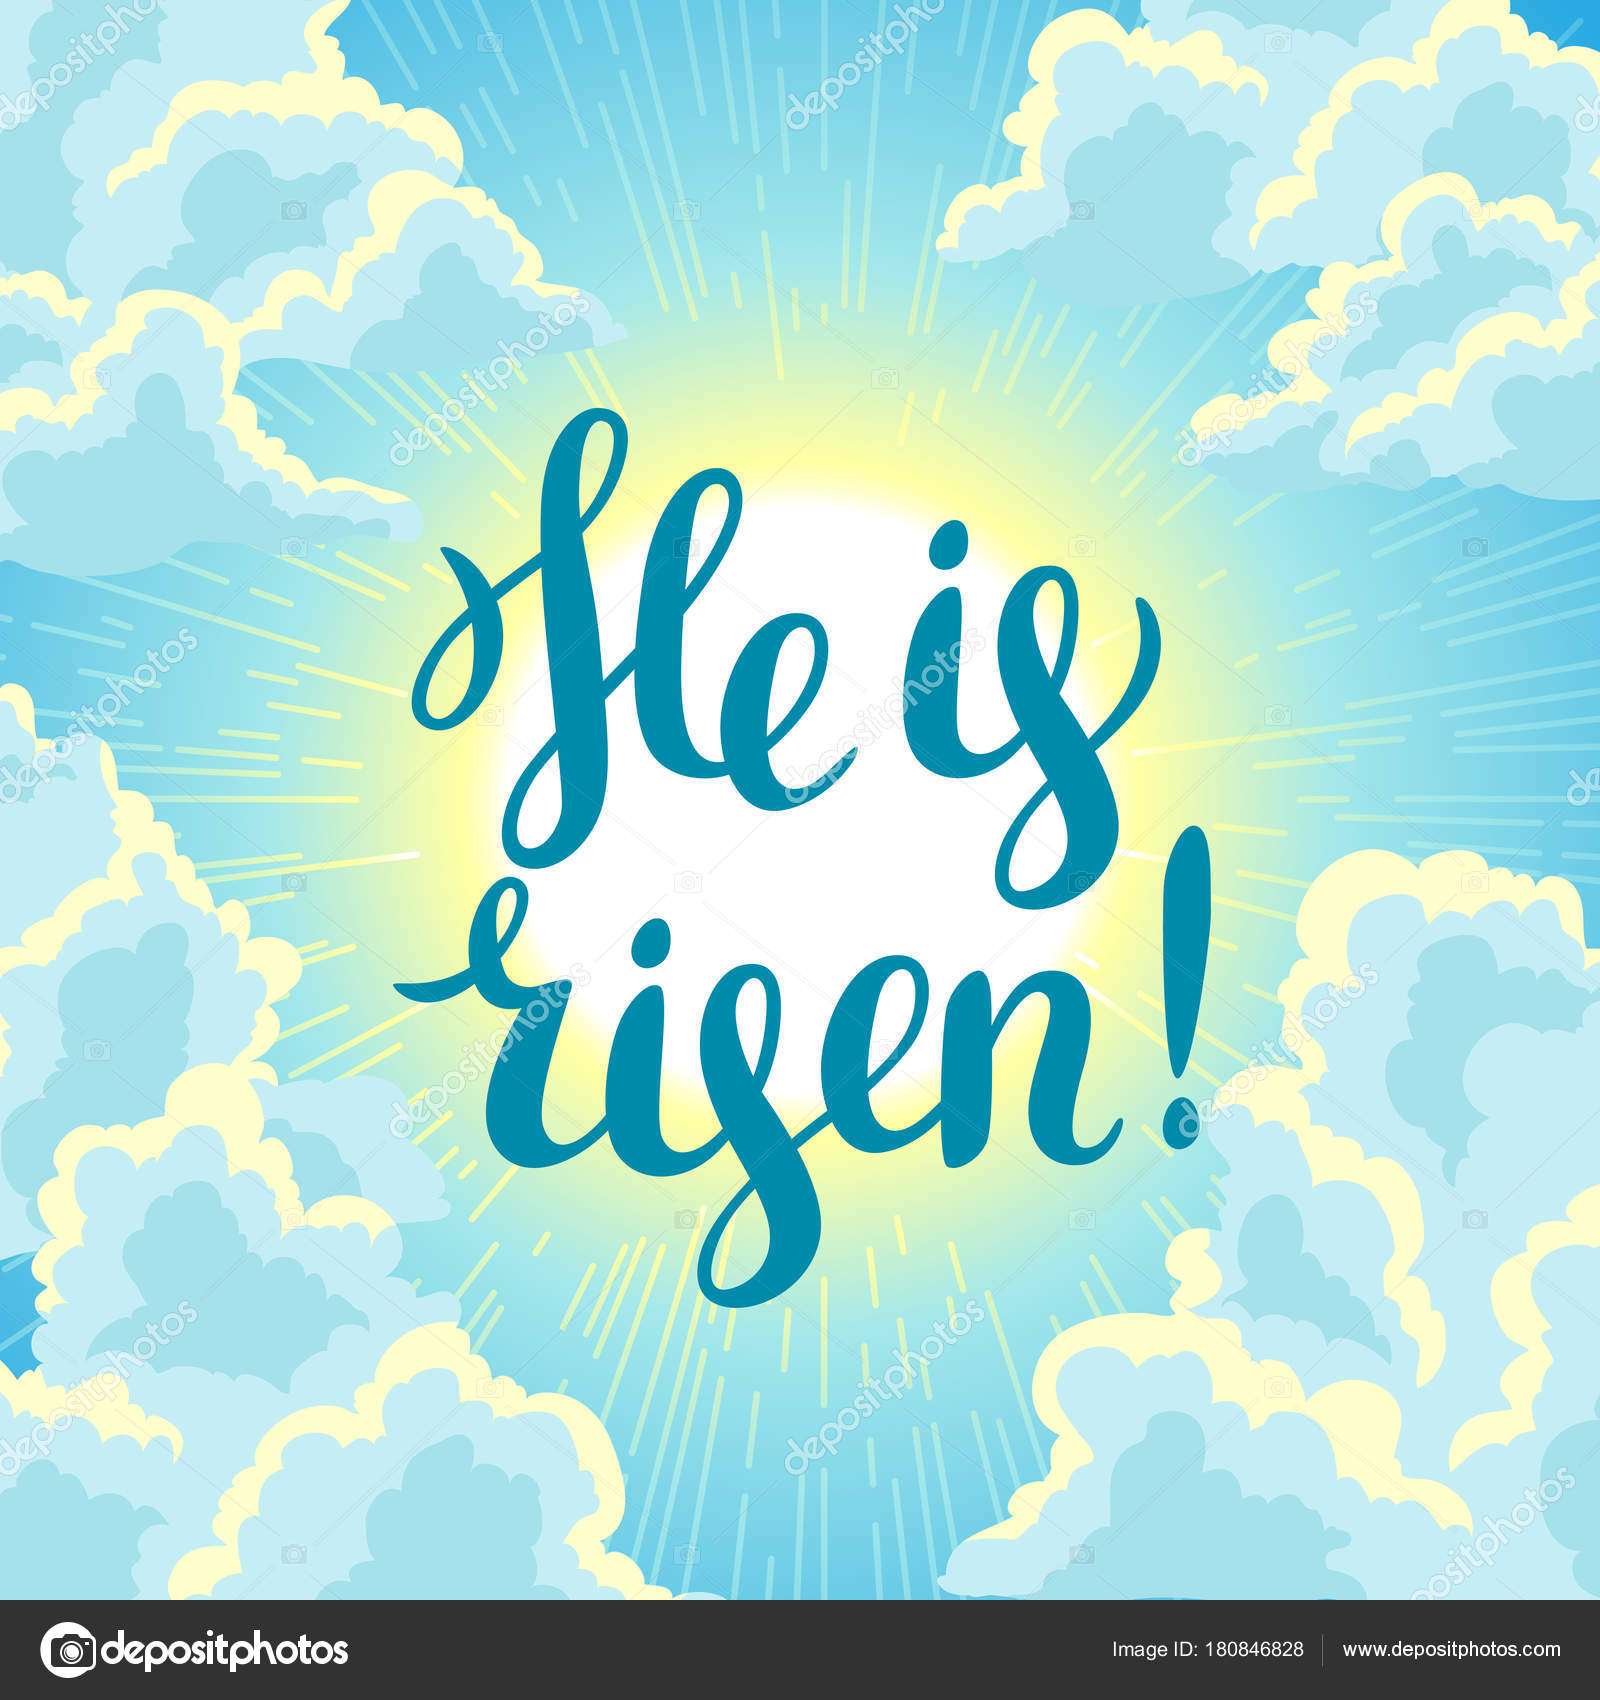 He Is Risen Happy Easter Concept Illustration Or Greeting Card